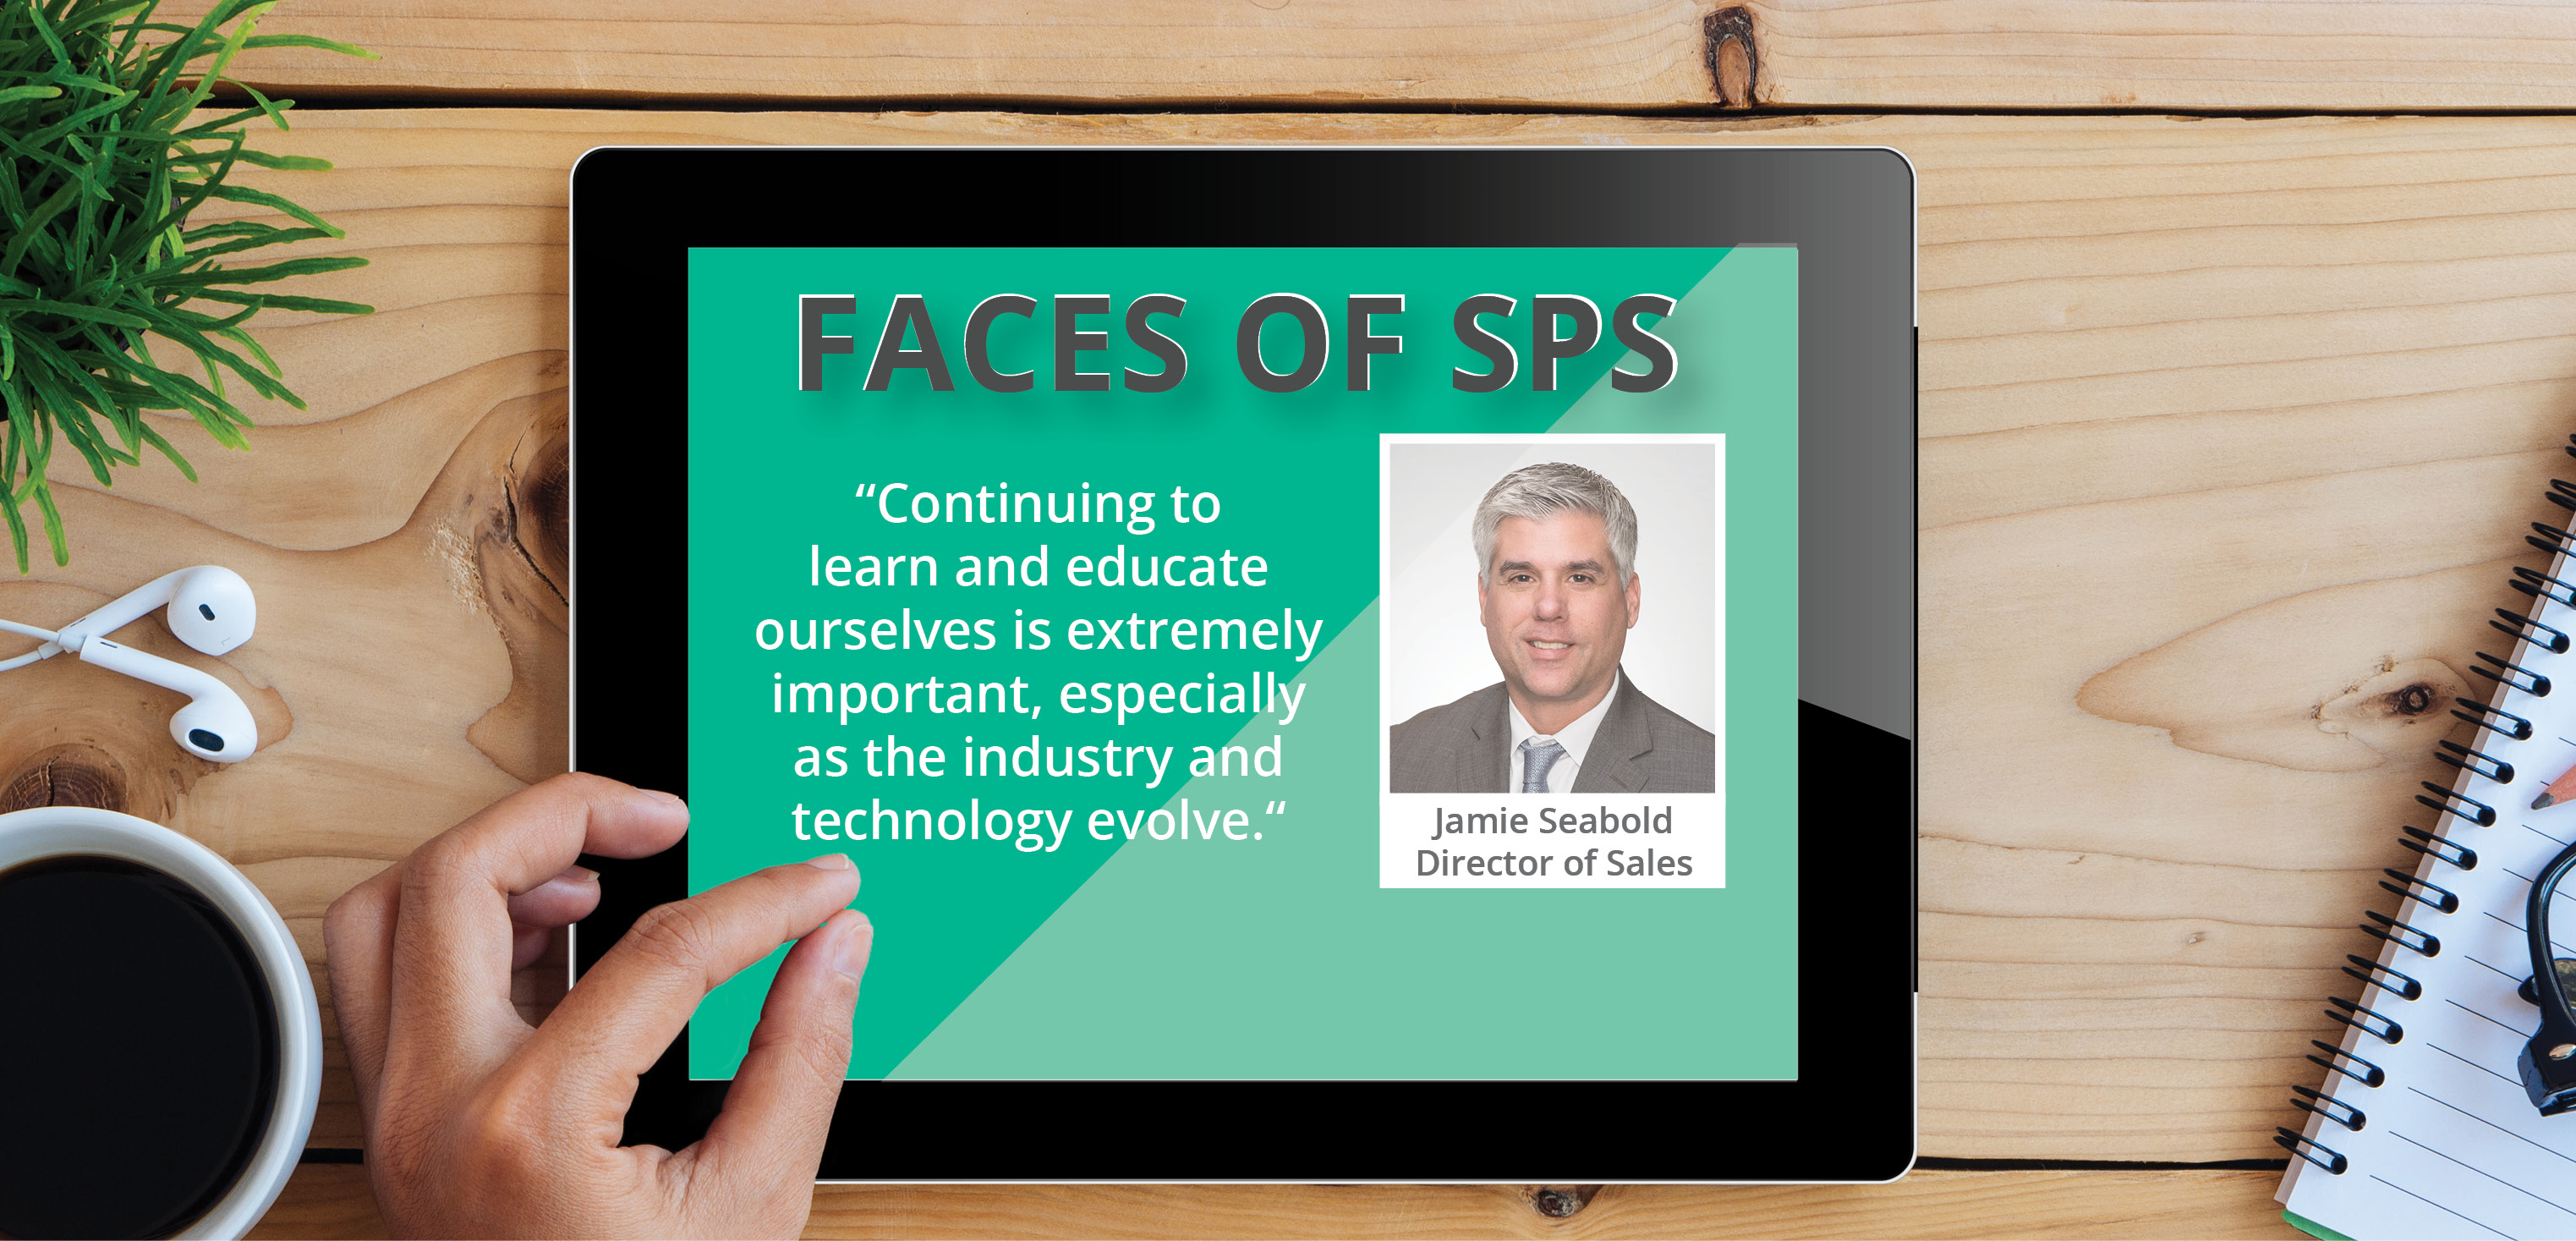 Faces of sps blog